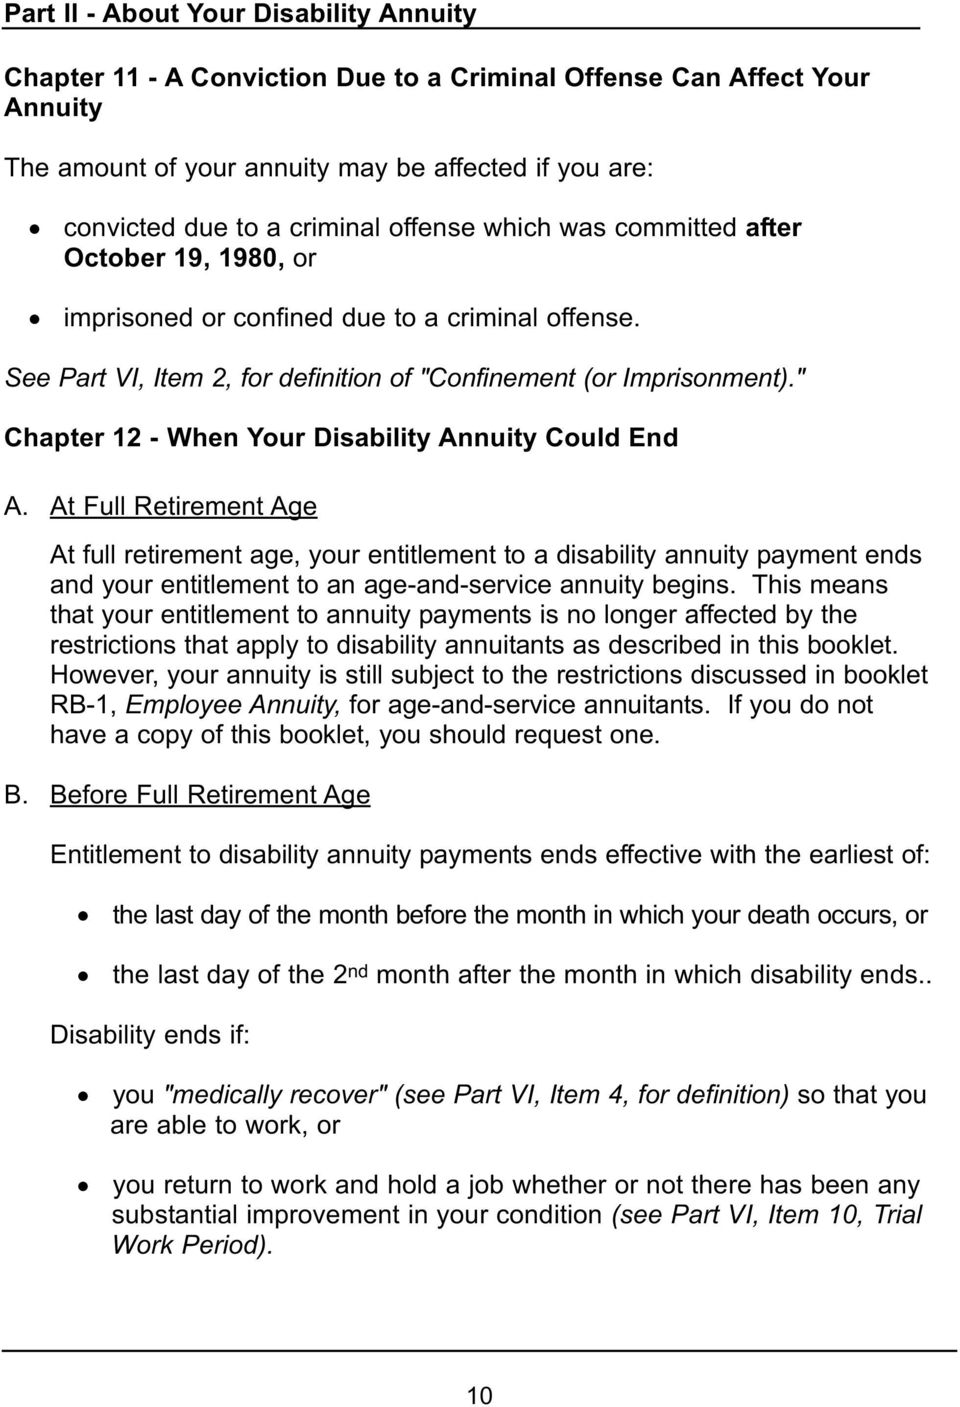 """ Chapter 12 - When Your Disability Annuity Could End A."